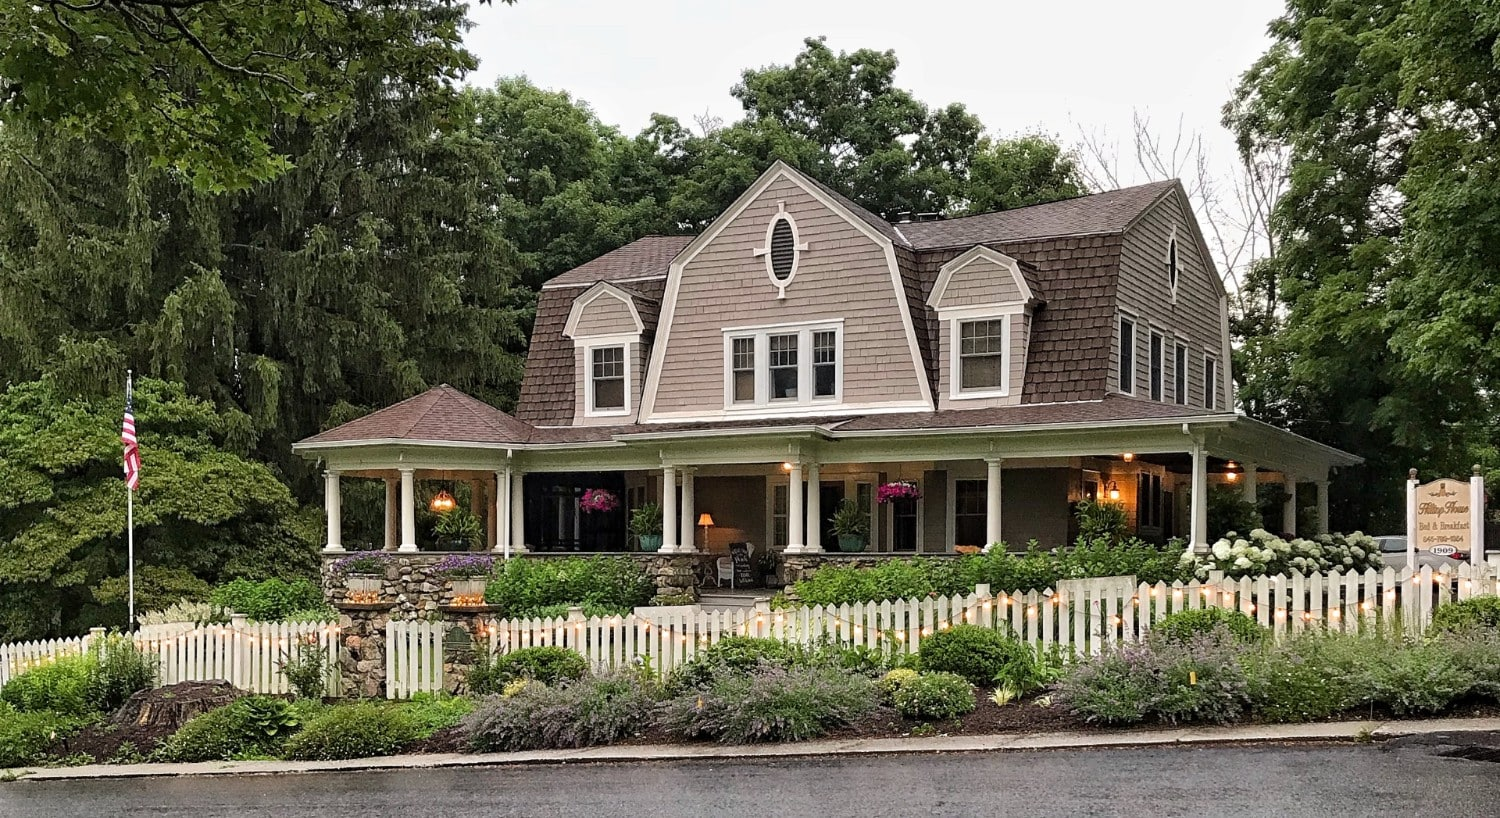 Front view from the street of large brown home with stone wrap around porch, white pillars, hanging plants and picket fence out front